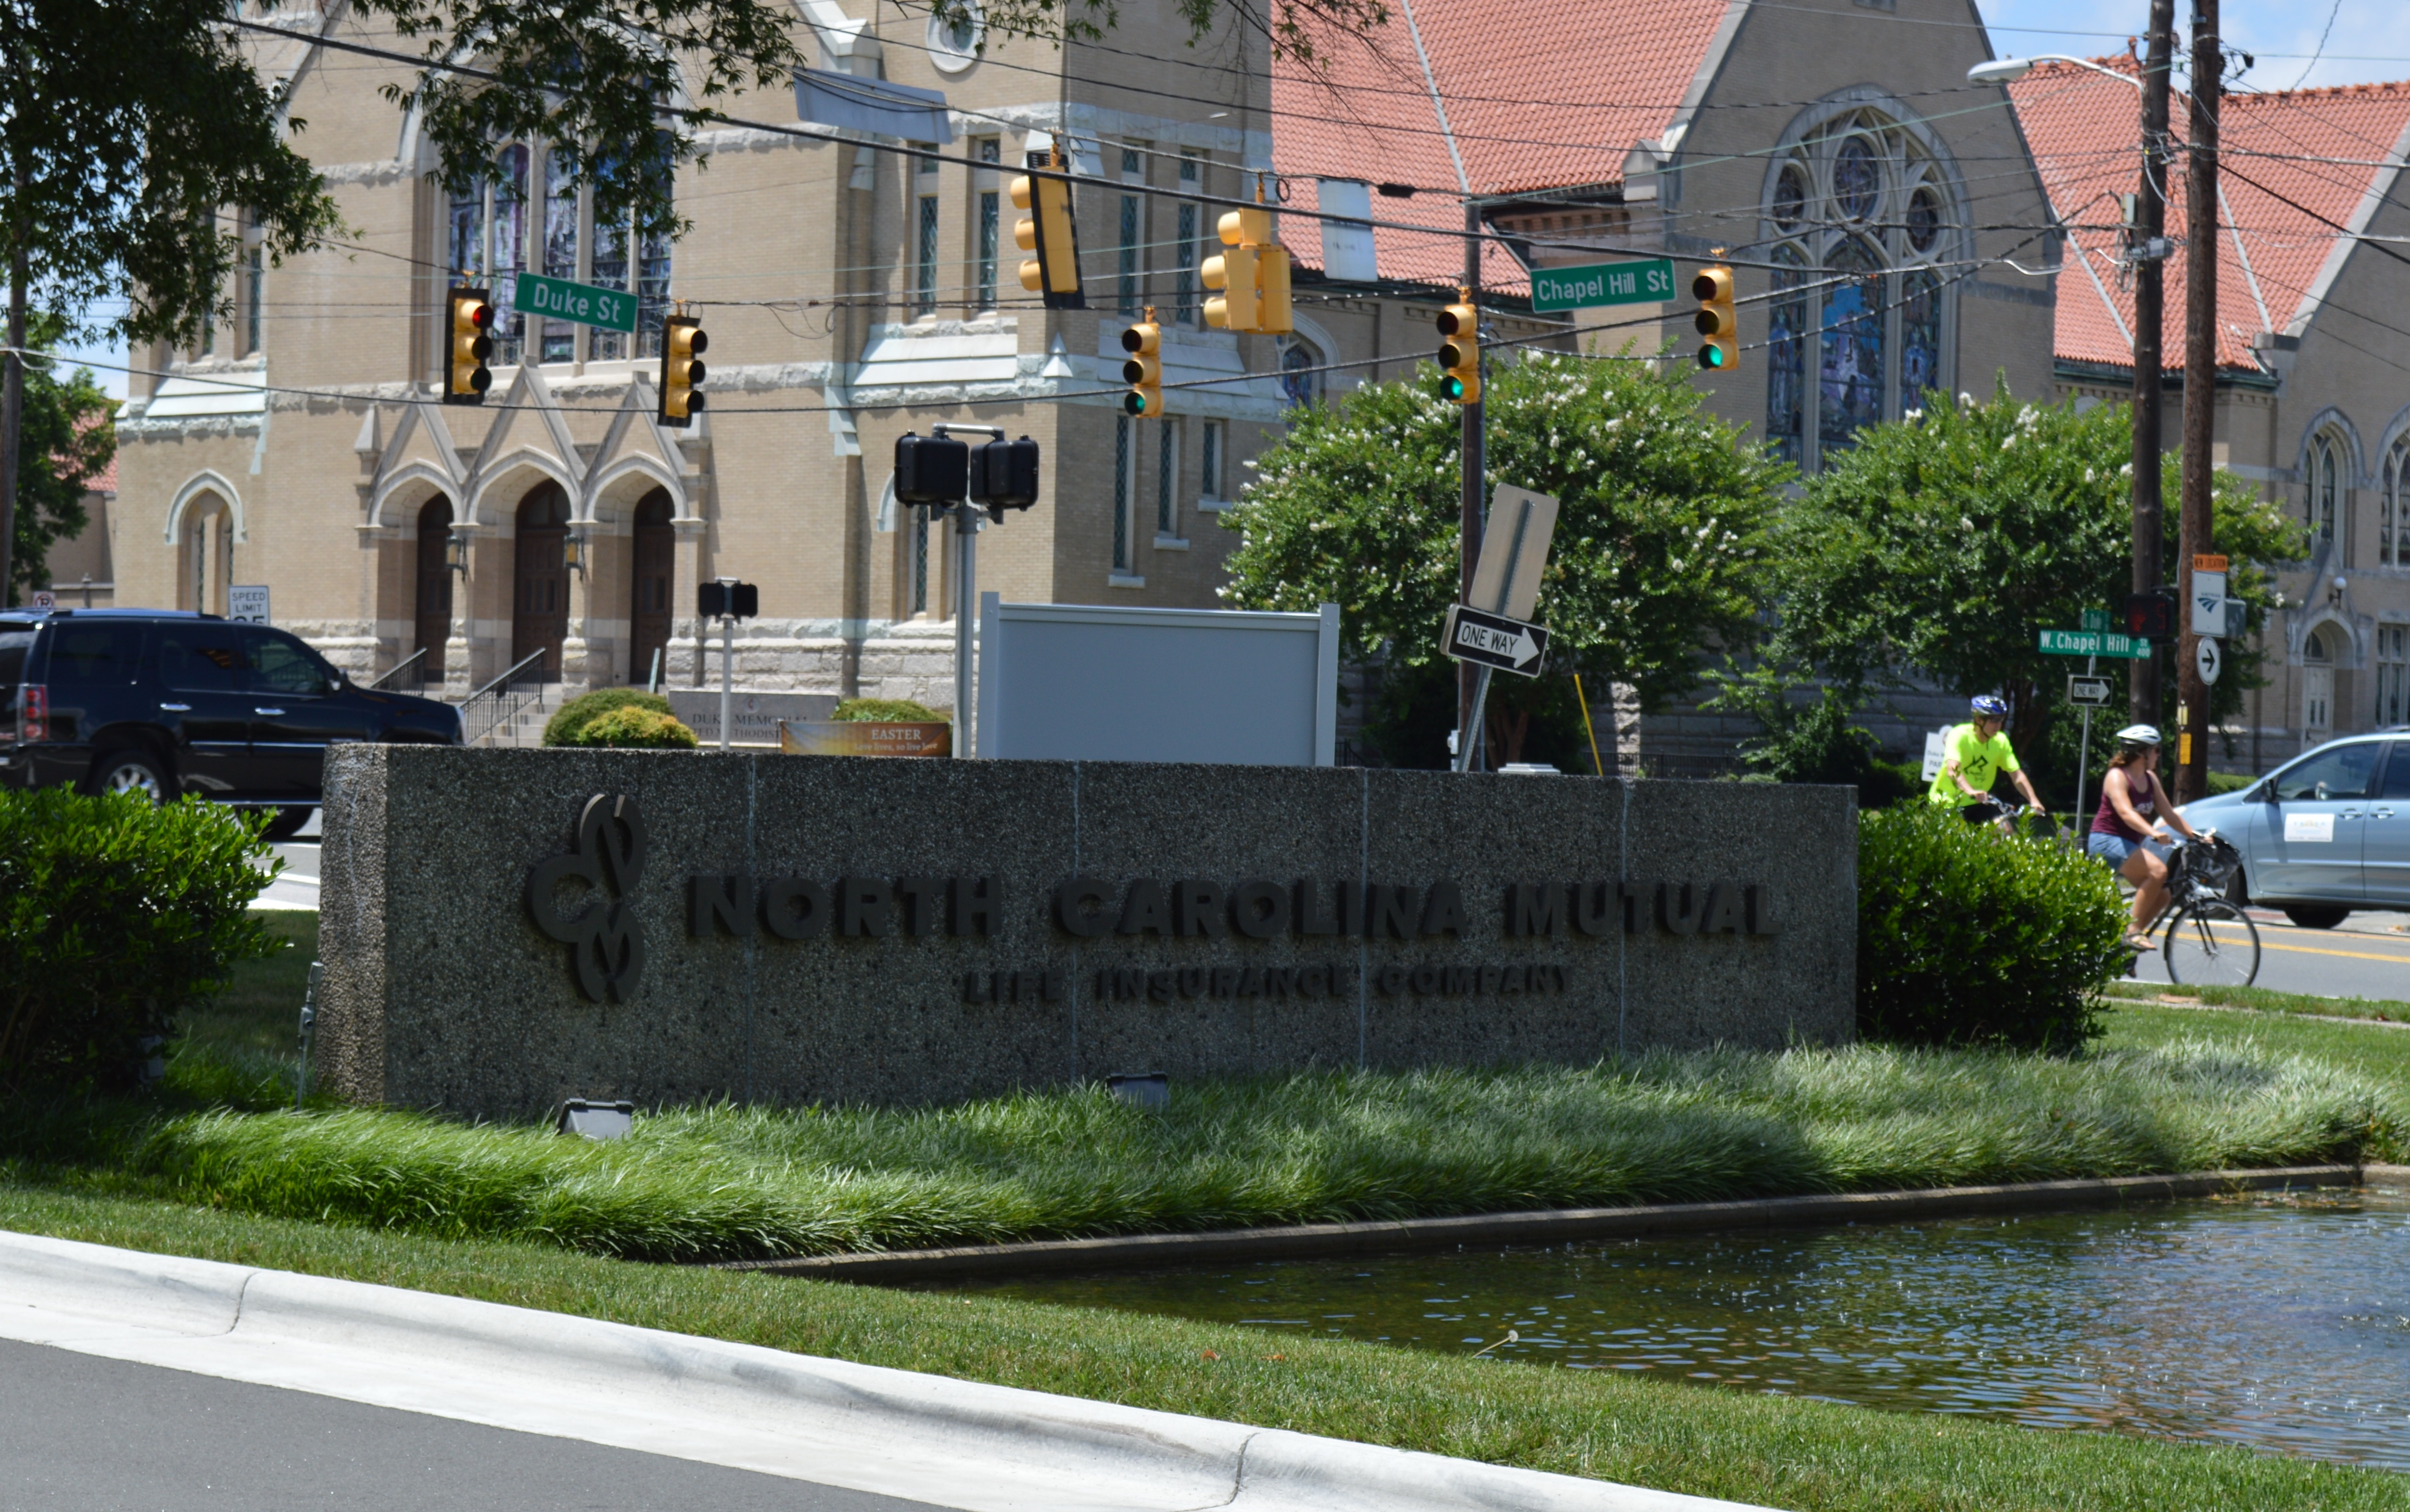 View of sign at the corner of Duke St. and Chapel Hill St.